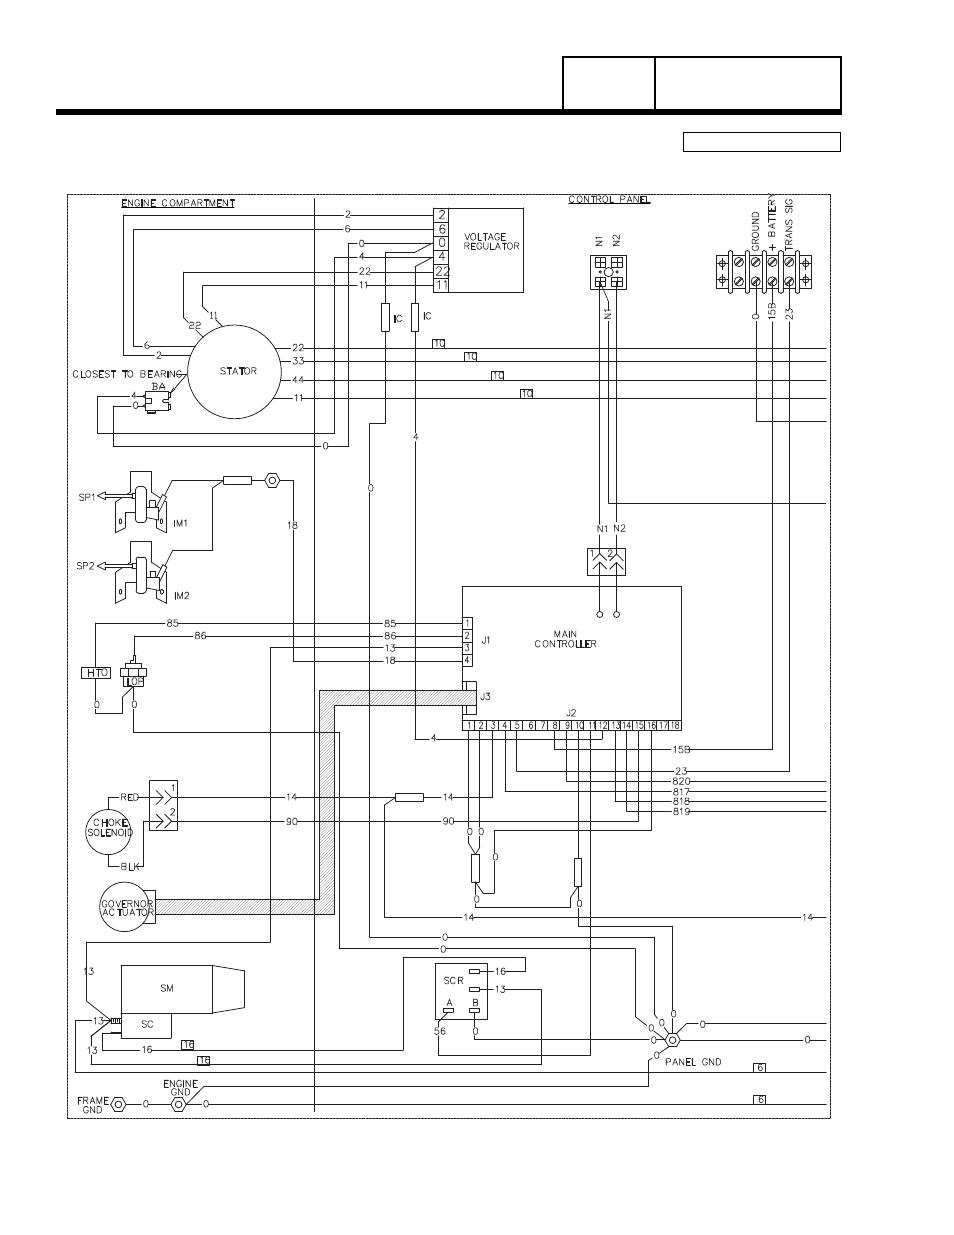 medium resolution of wiring diagram 17 kw home standby group g part 7 generac power systems 8 kw lp user manual page 178 192